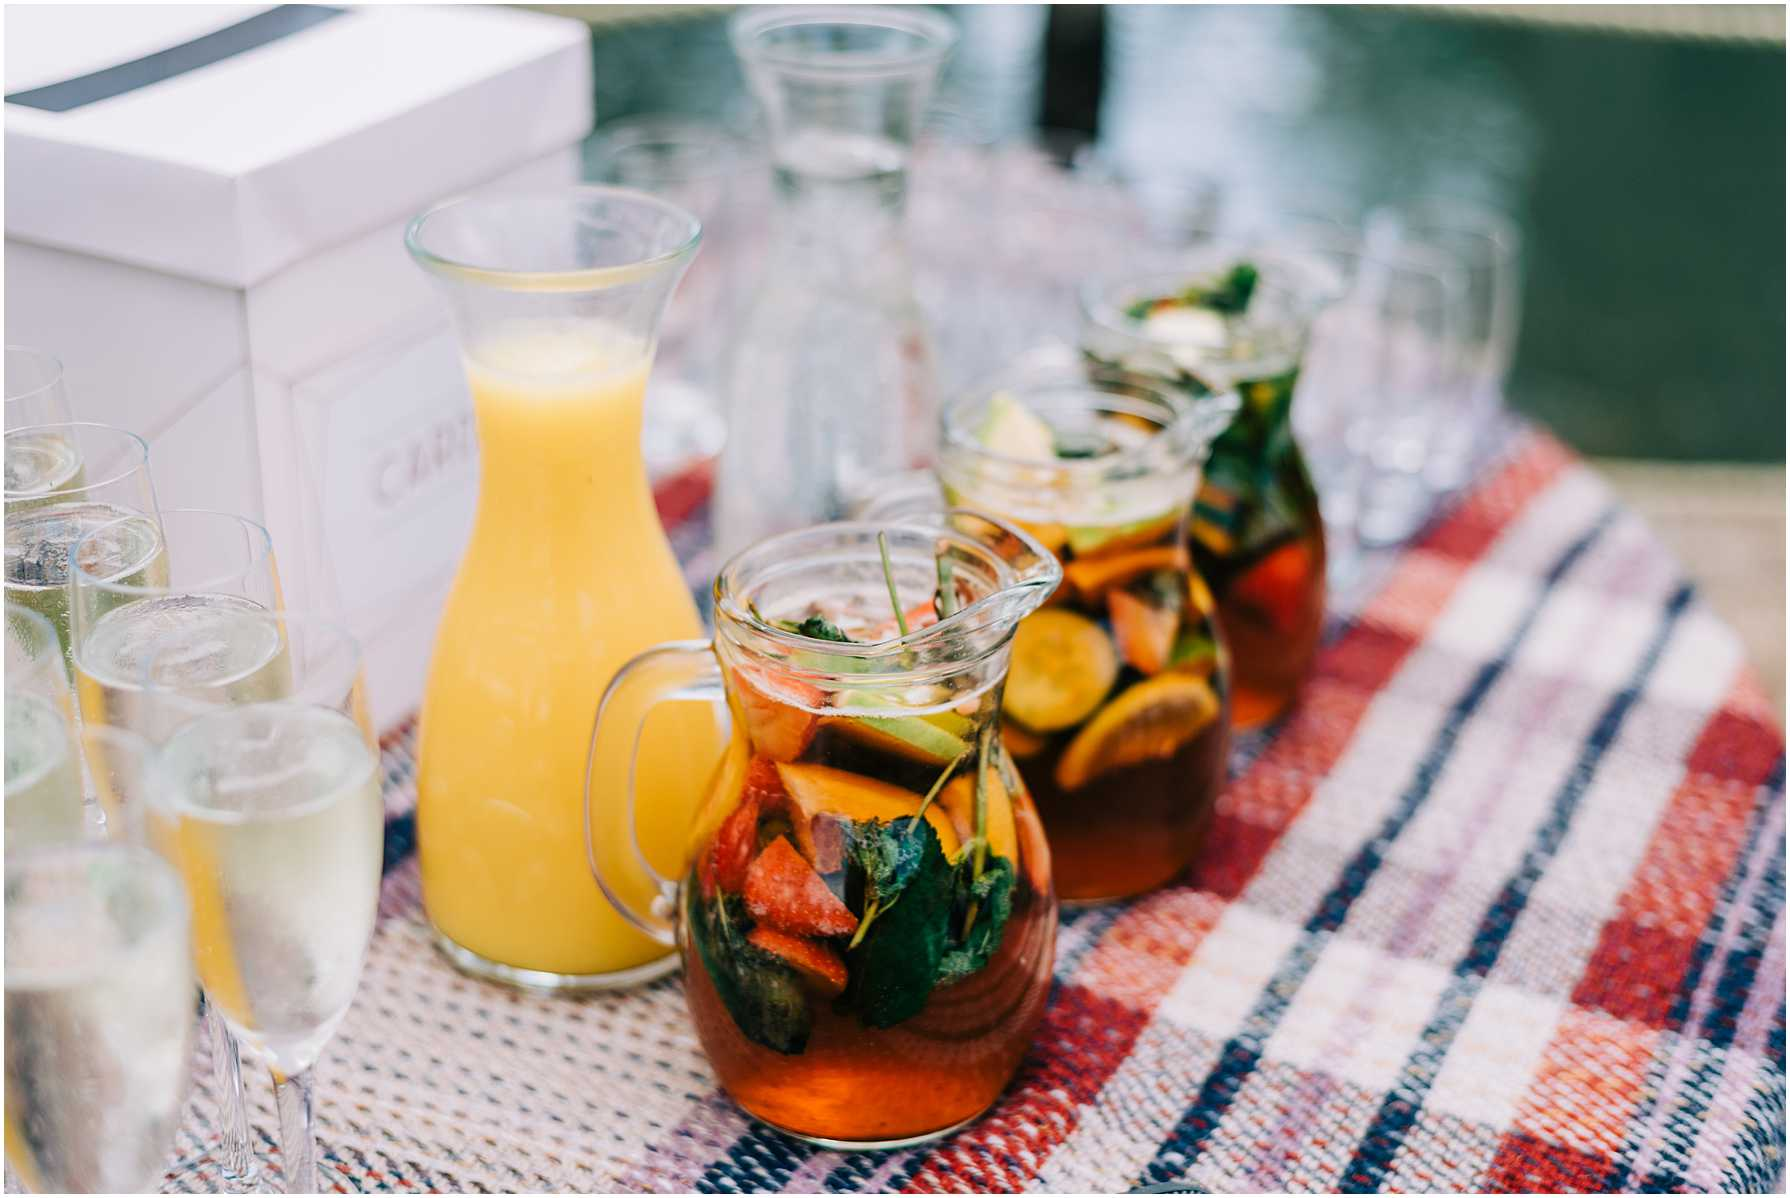 jugs of pimms being served at a wedding